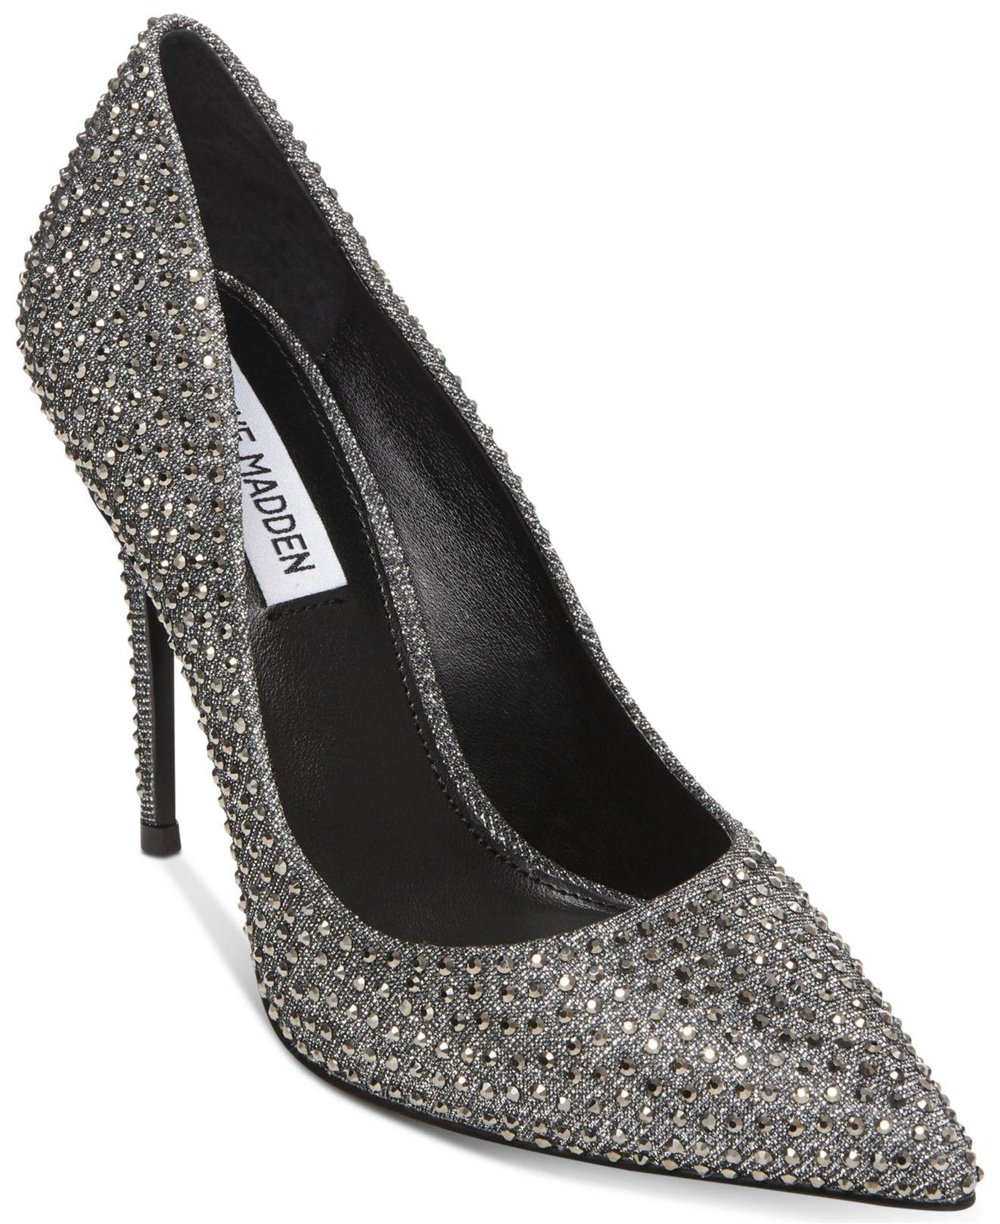 The Rock Star - Ok so I had to add a pair of studded heels. These are beautiful and the tonal look of them makes the studs a little less